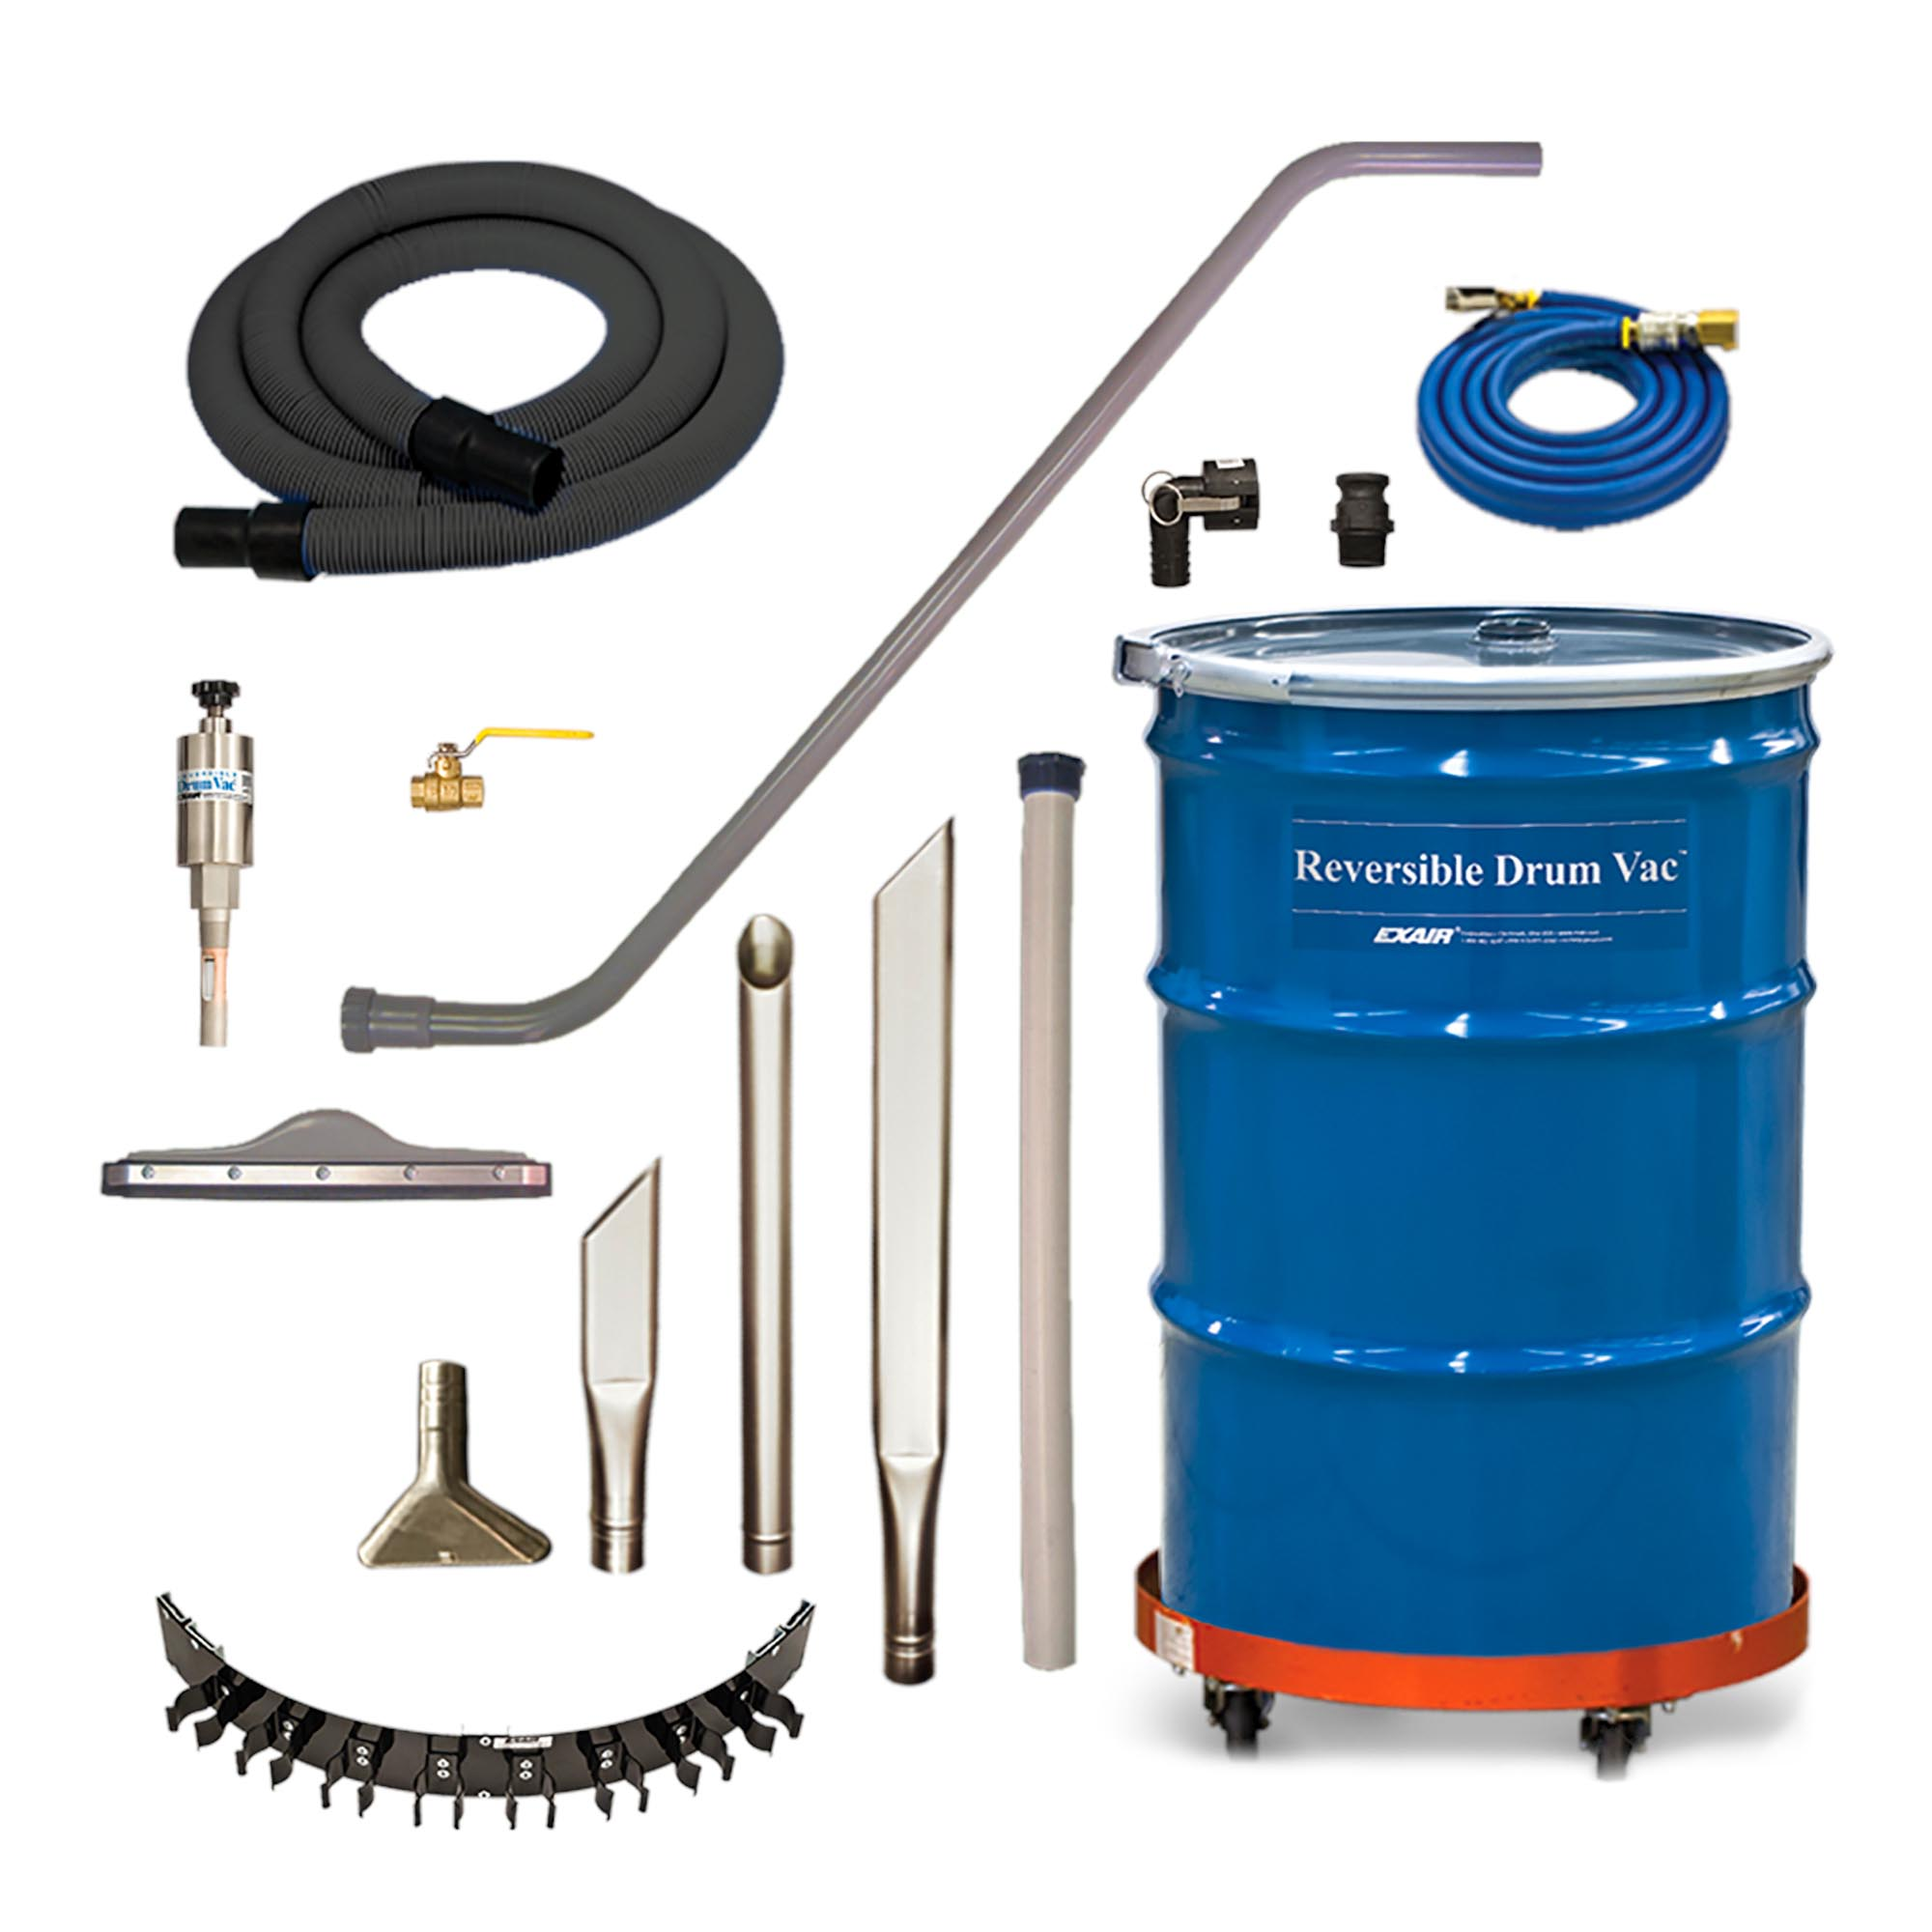 Model 6396 55 Gallon Premium Reversible Drum Vac System